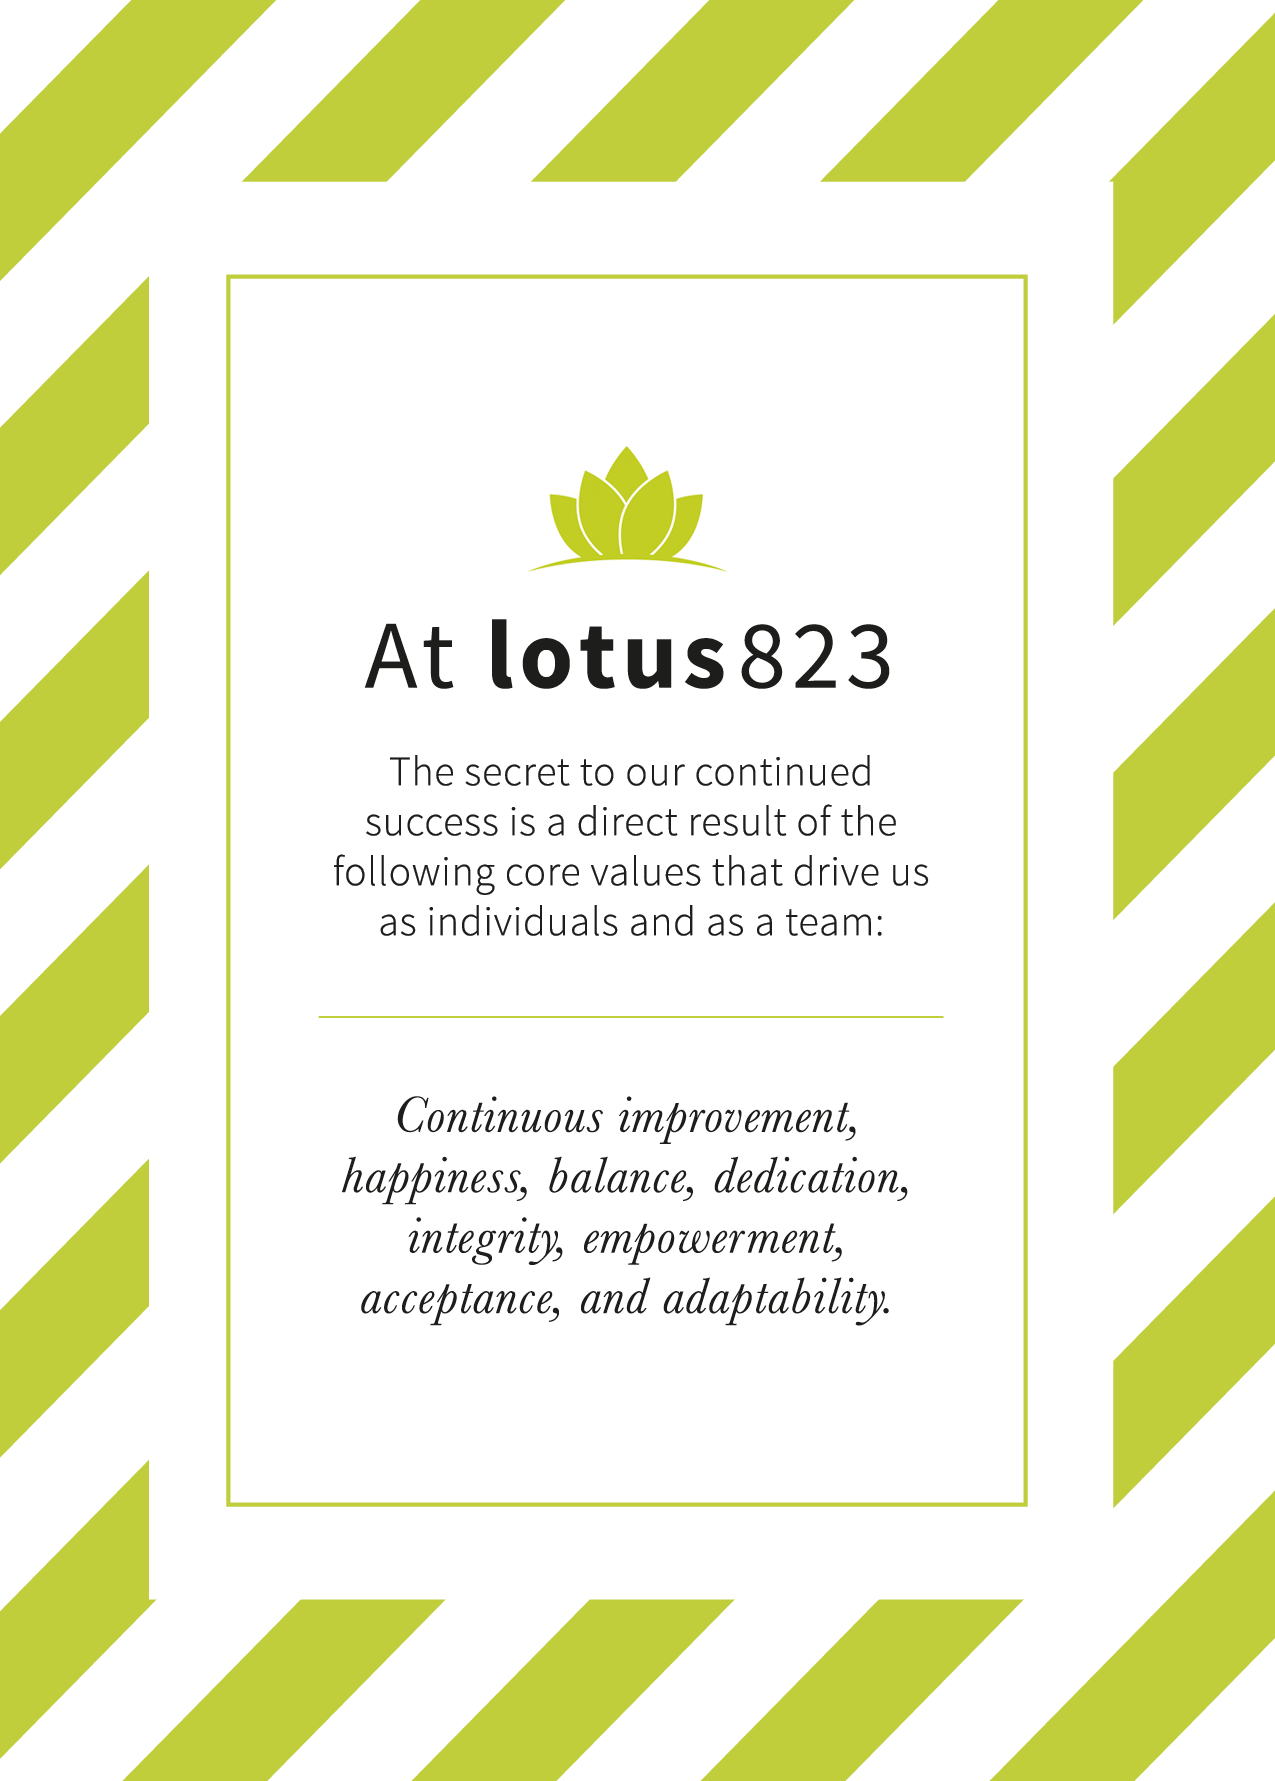 lotus823 core values